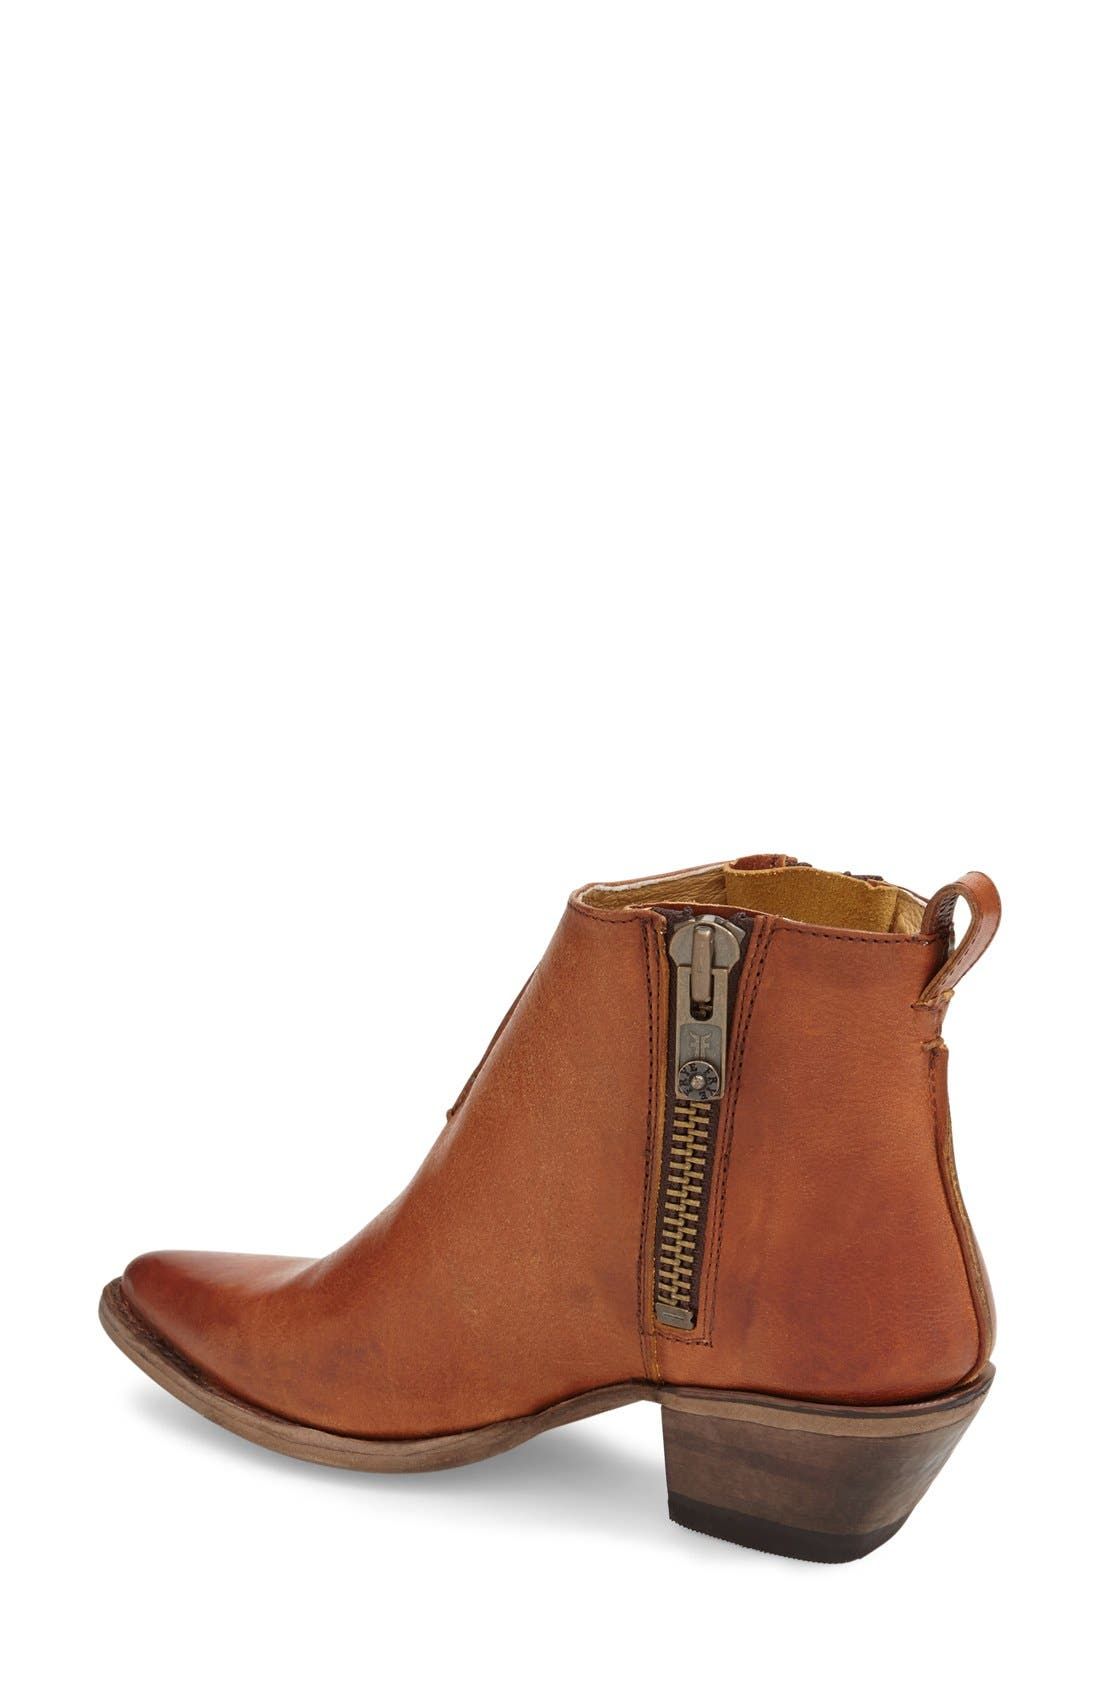 'Sacha' Washed Leather Ankle Boot,                             Alternate thumbnail 6, color,